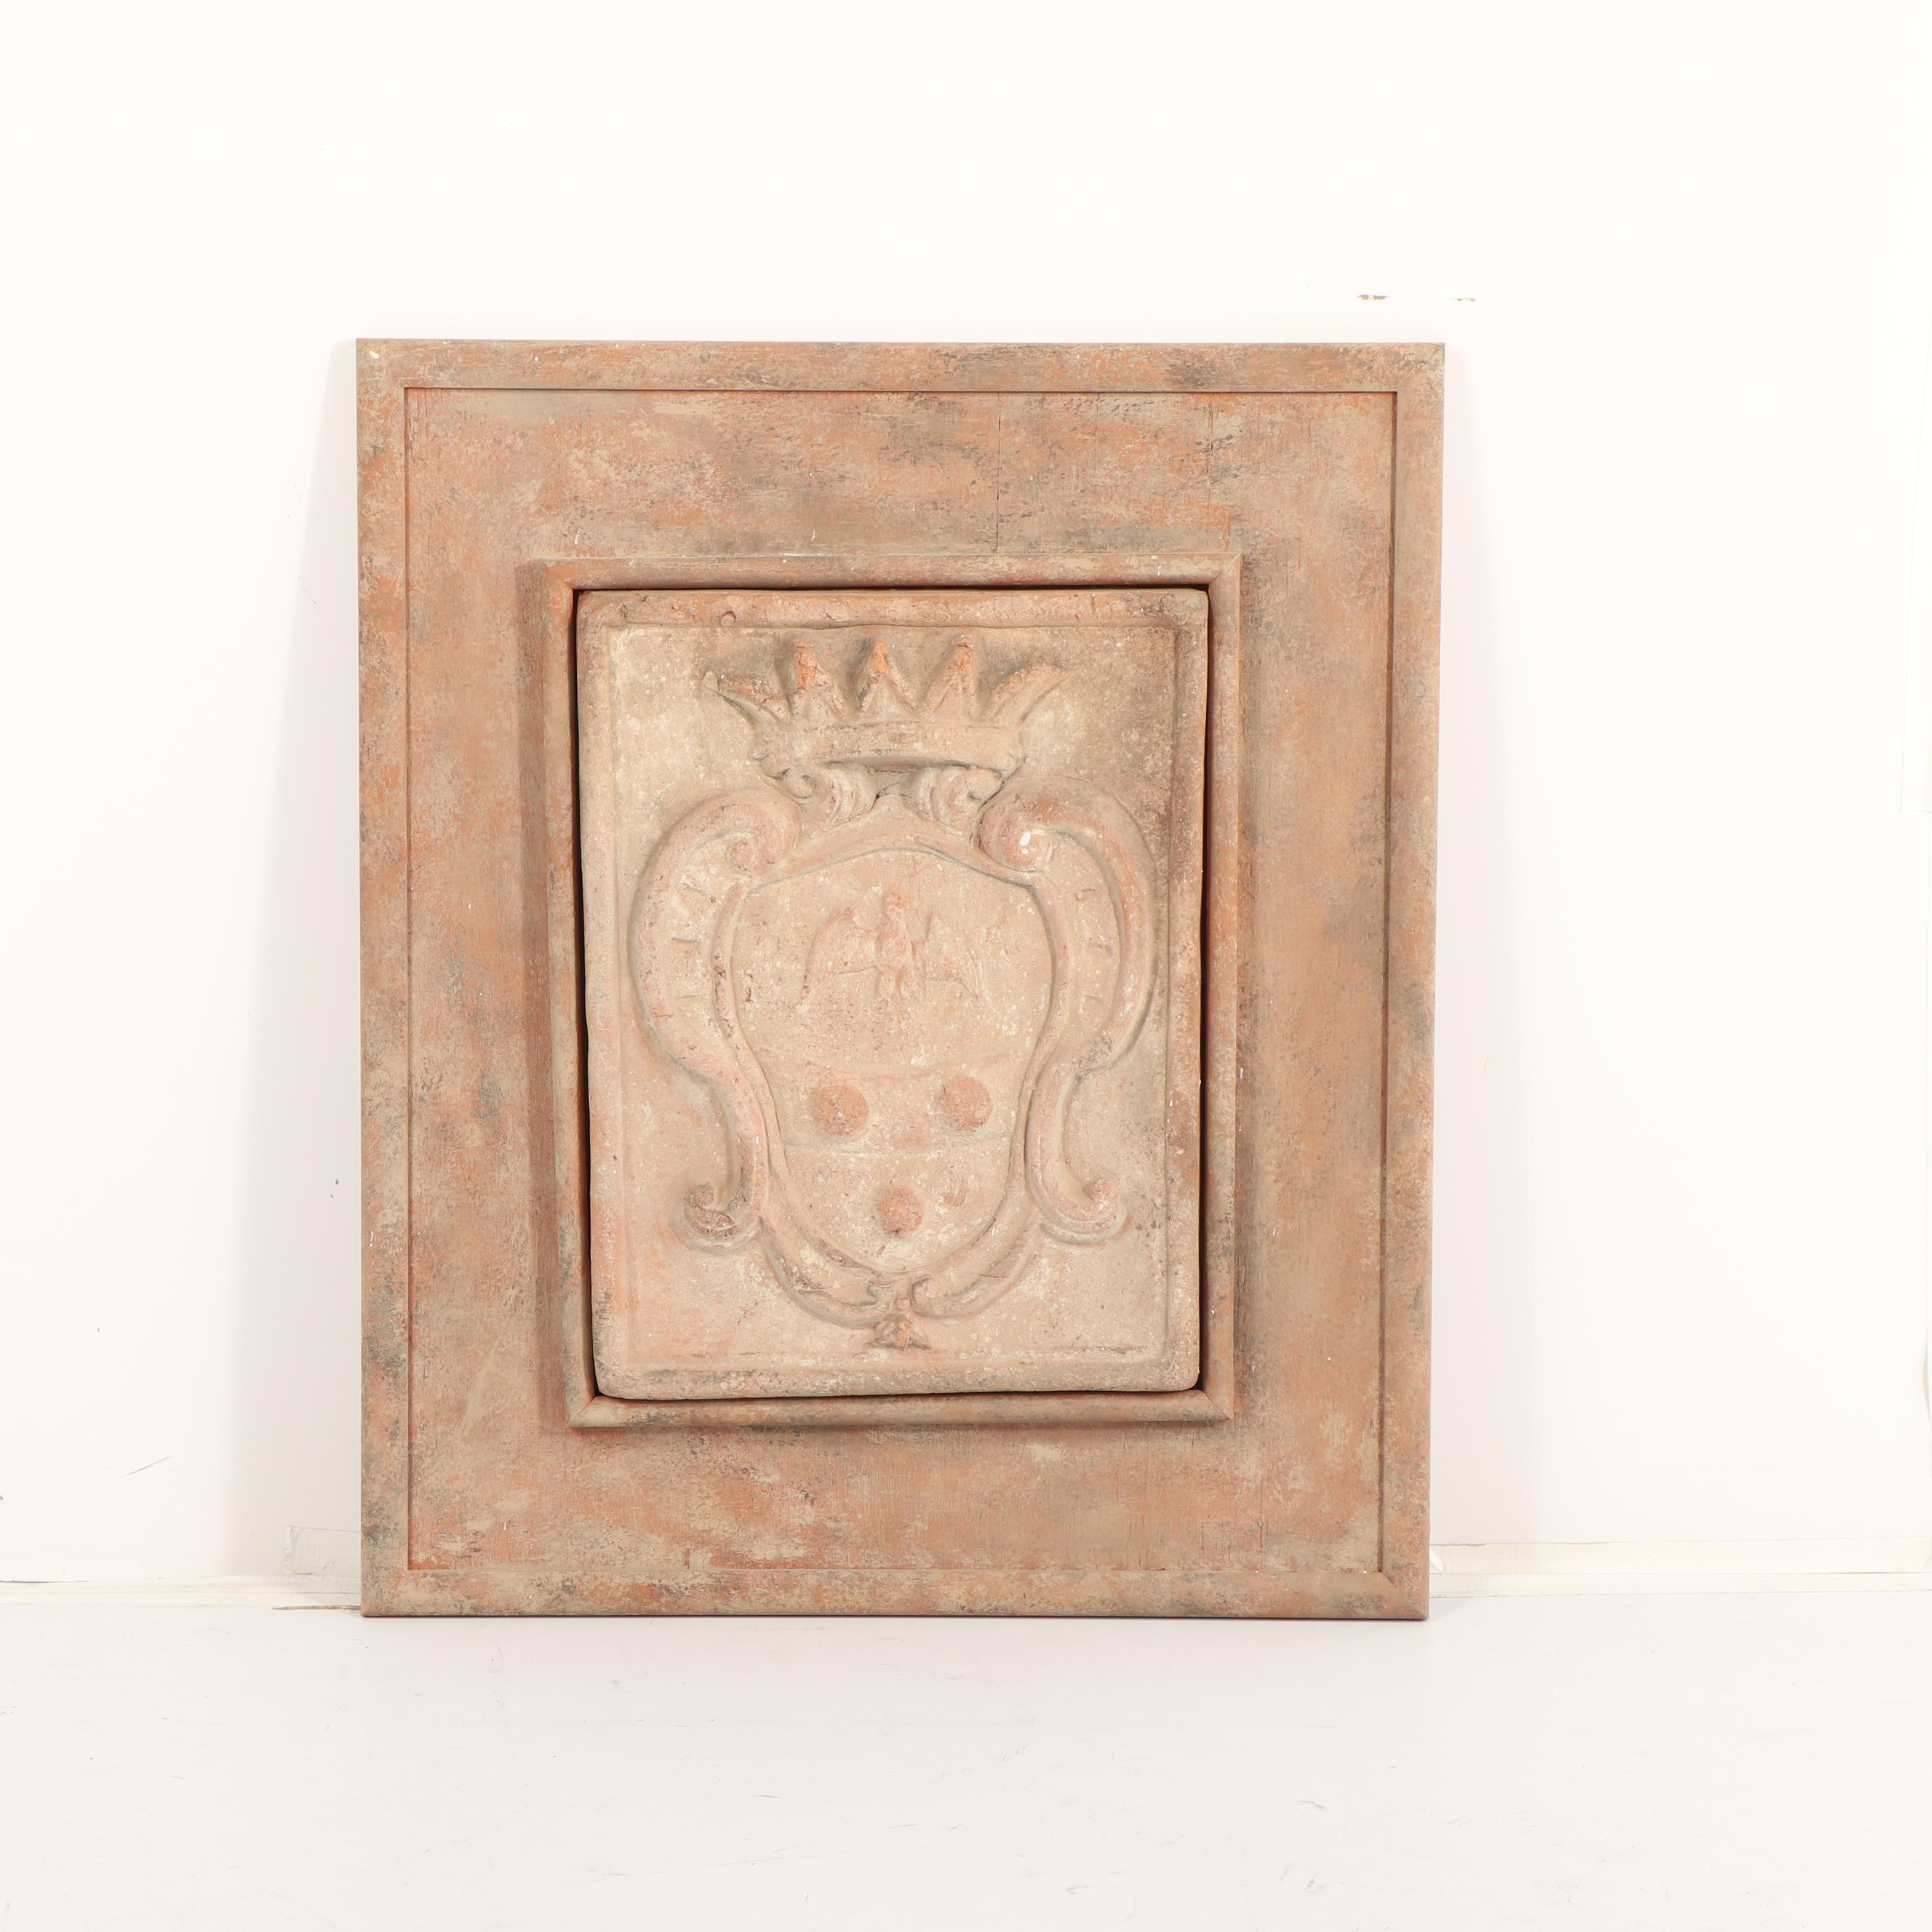 Cast Ceramic Panel with Coat of Arms Motif